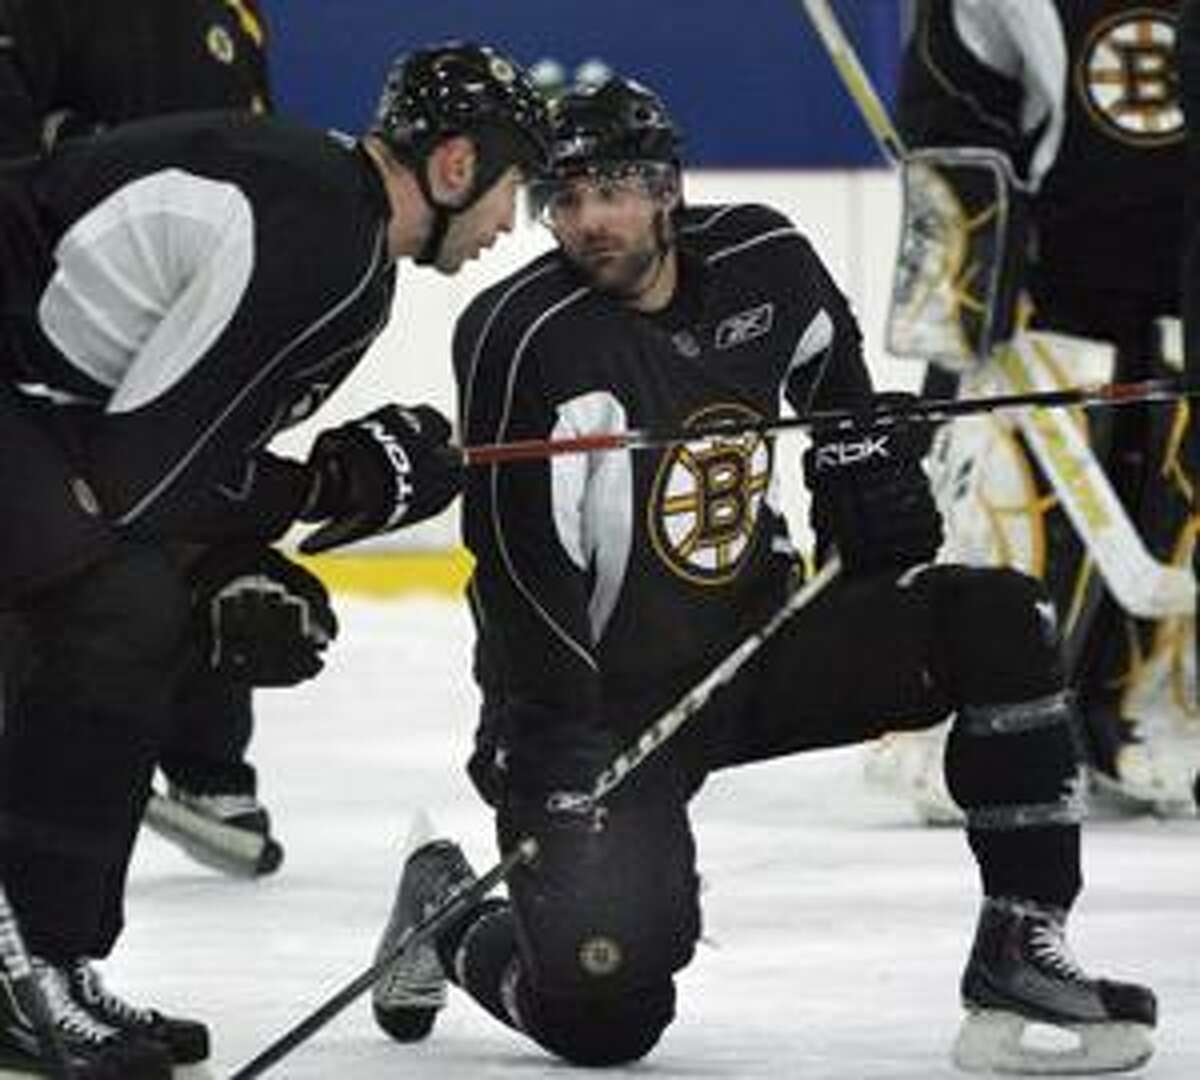 AP Boston Bruins captain Zdeno Chara, left, speaks with teammate Johnny Boychuk during practice in Wilmington, Mass. Thursday. The Bruins are preparing for their second-round NHL playoff series against the Philadelphia Flyers, which starts Saturday.